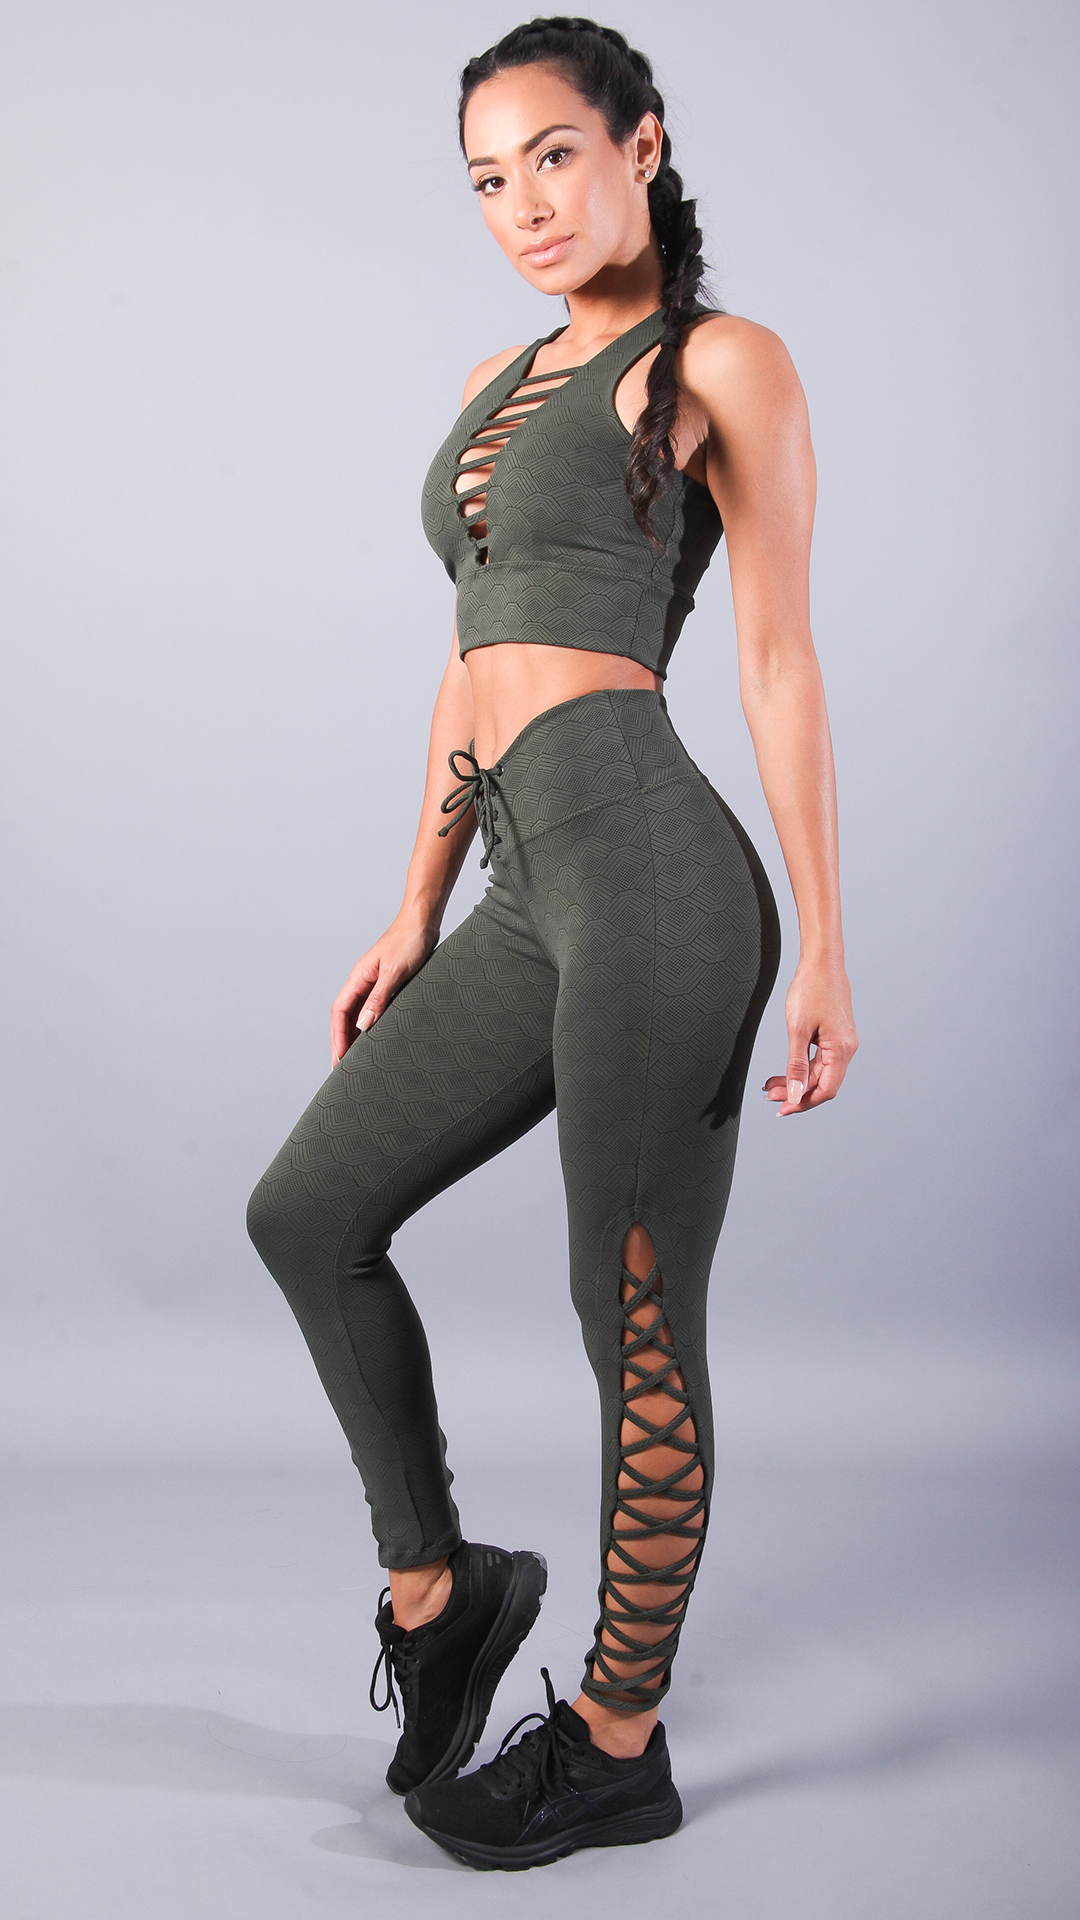 OLIVE JULIE LEGGINGS L7047 - Equilibrium Activewear